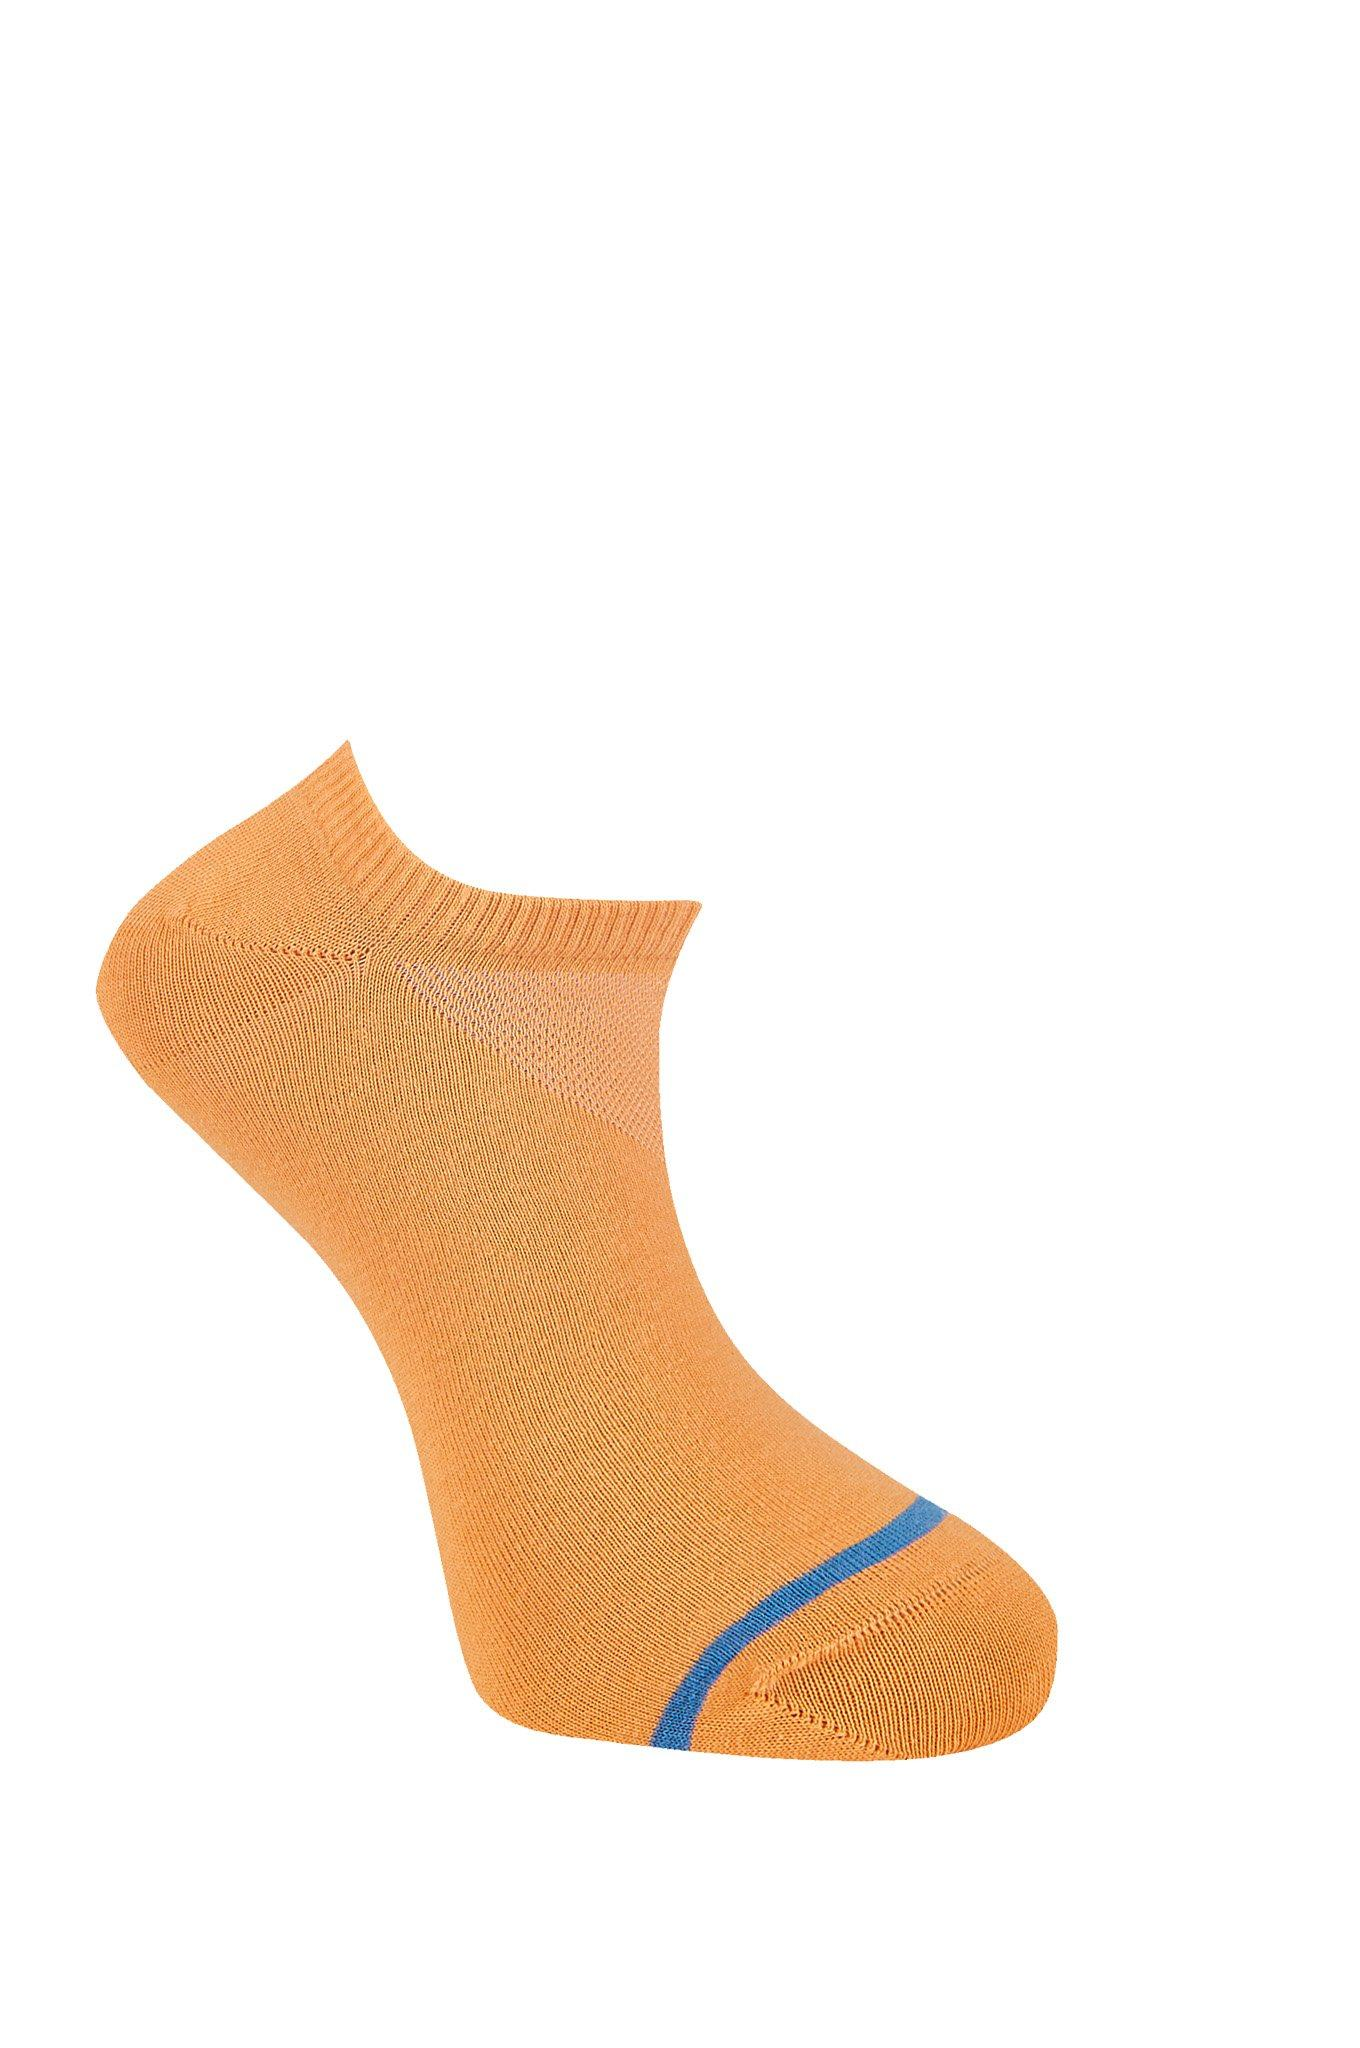 SUN Apricot Organic Cotton Trainer Socks - Komodo Fashion